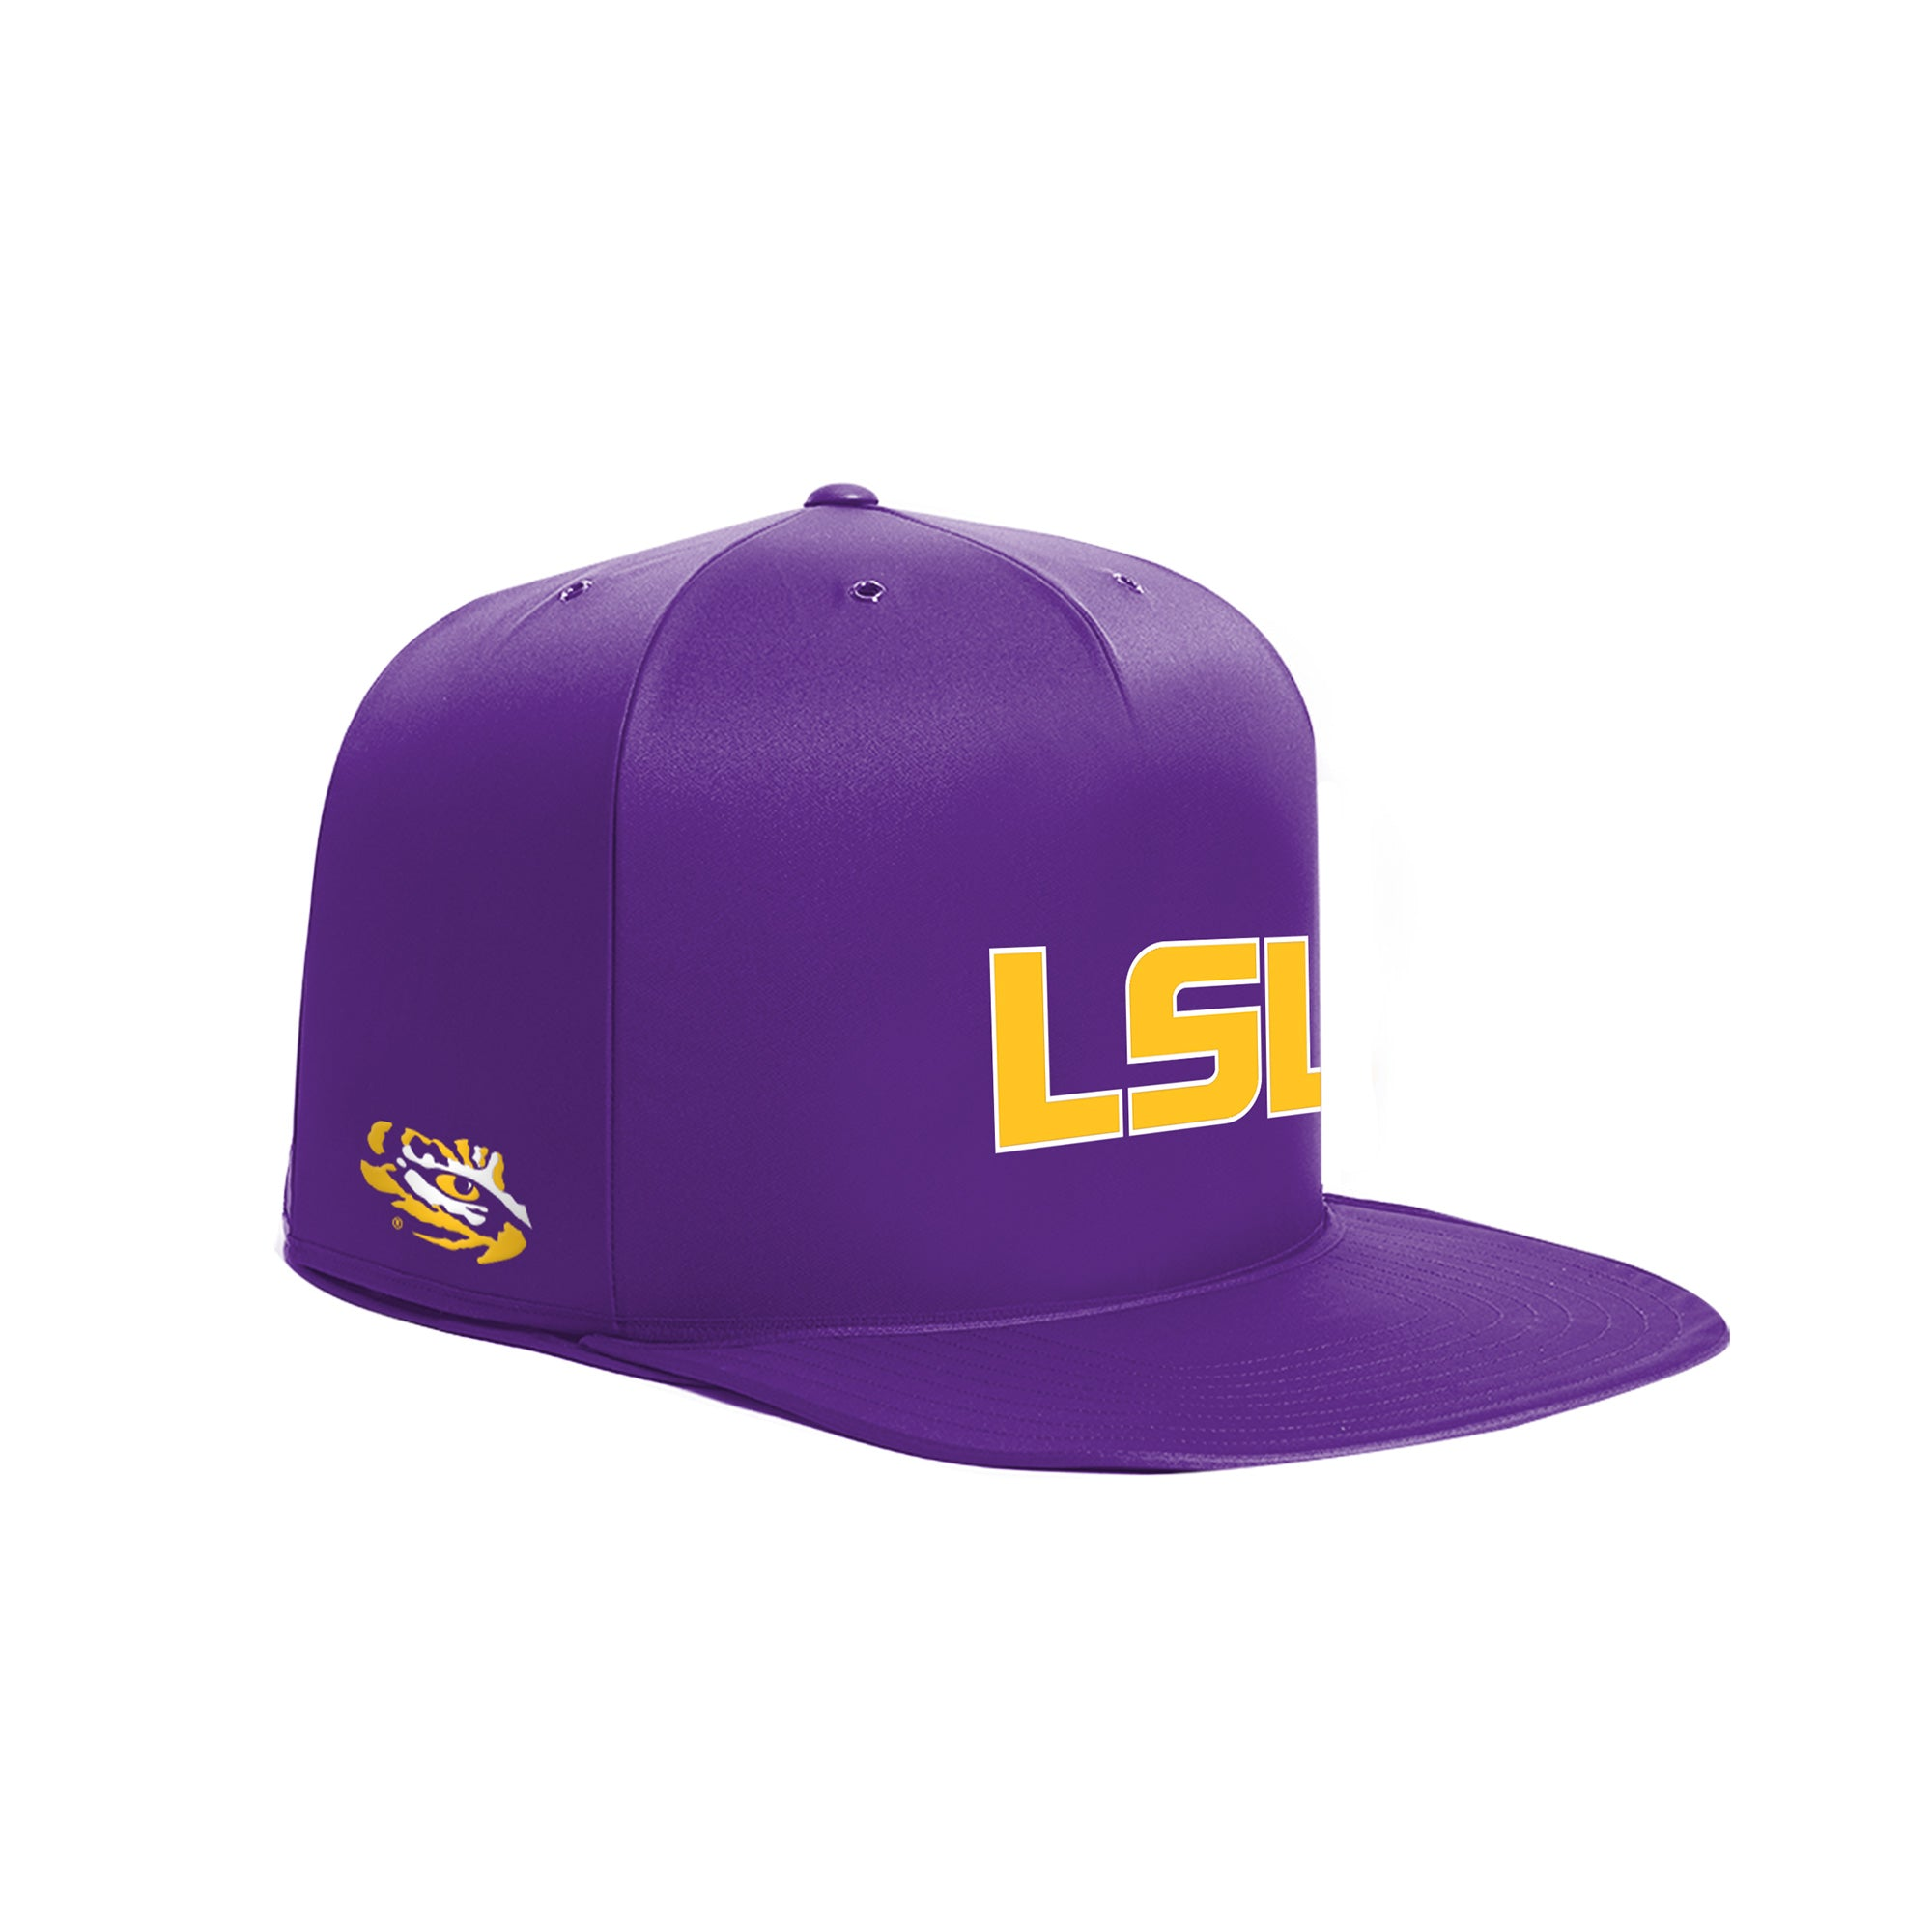 Nap Cap - Louisiana State University - Pet Bed